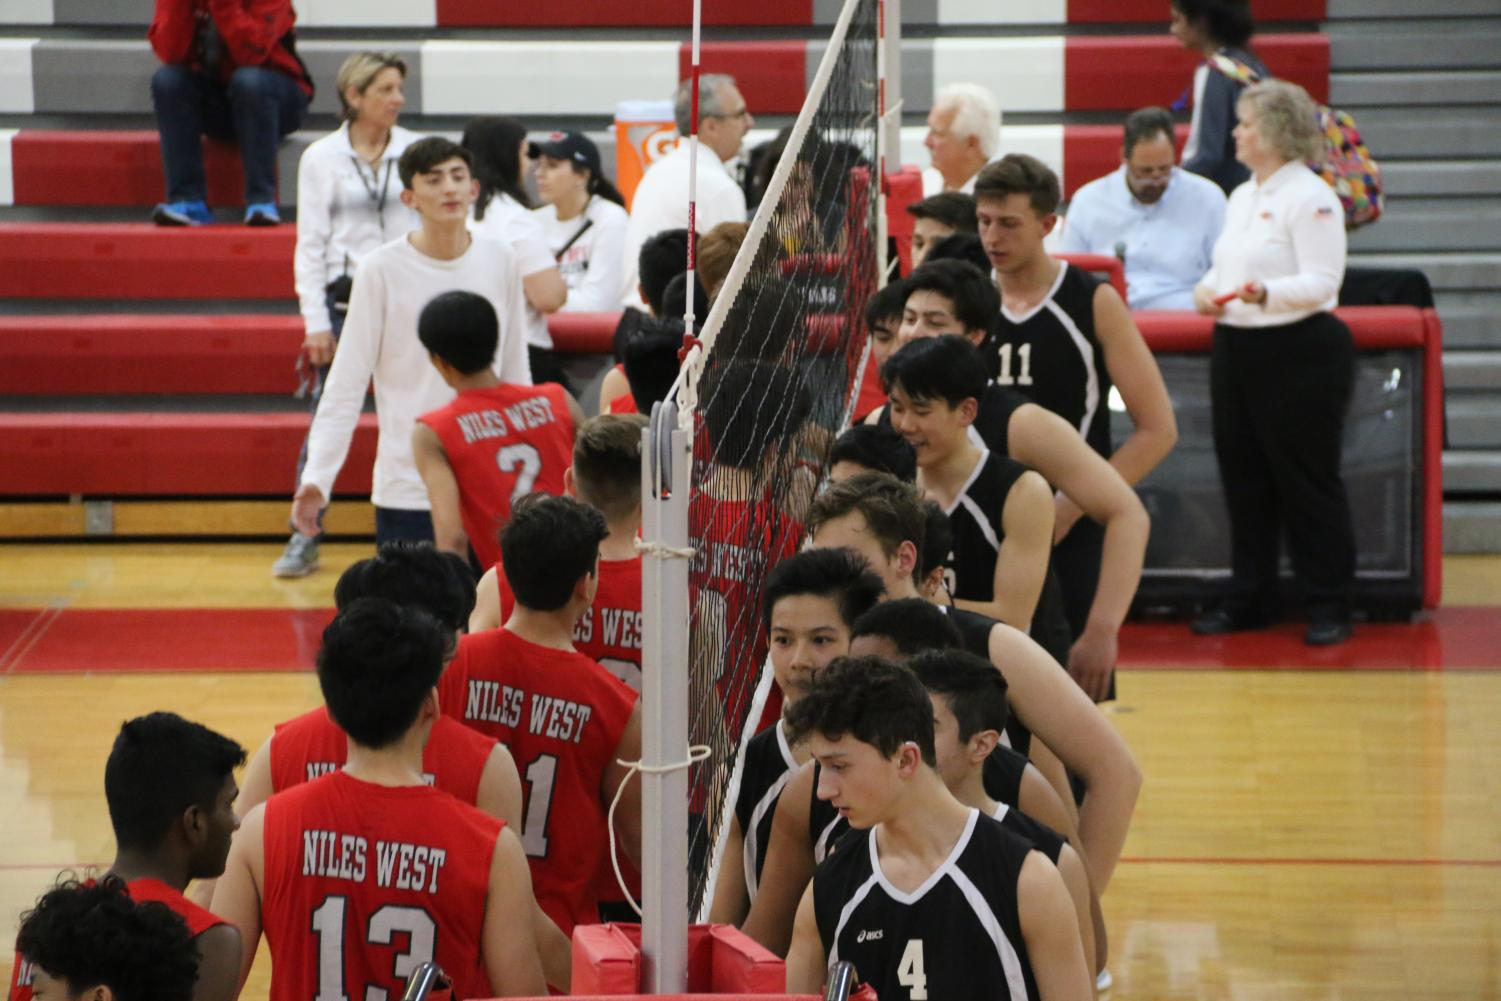 Niles West and Niles North teams shake hands to commence the match.